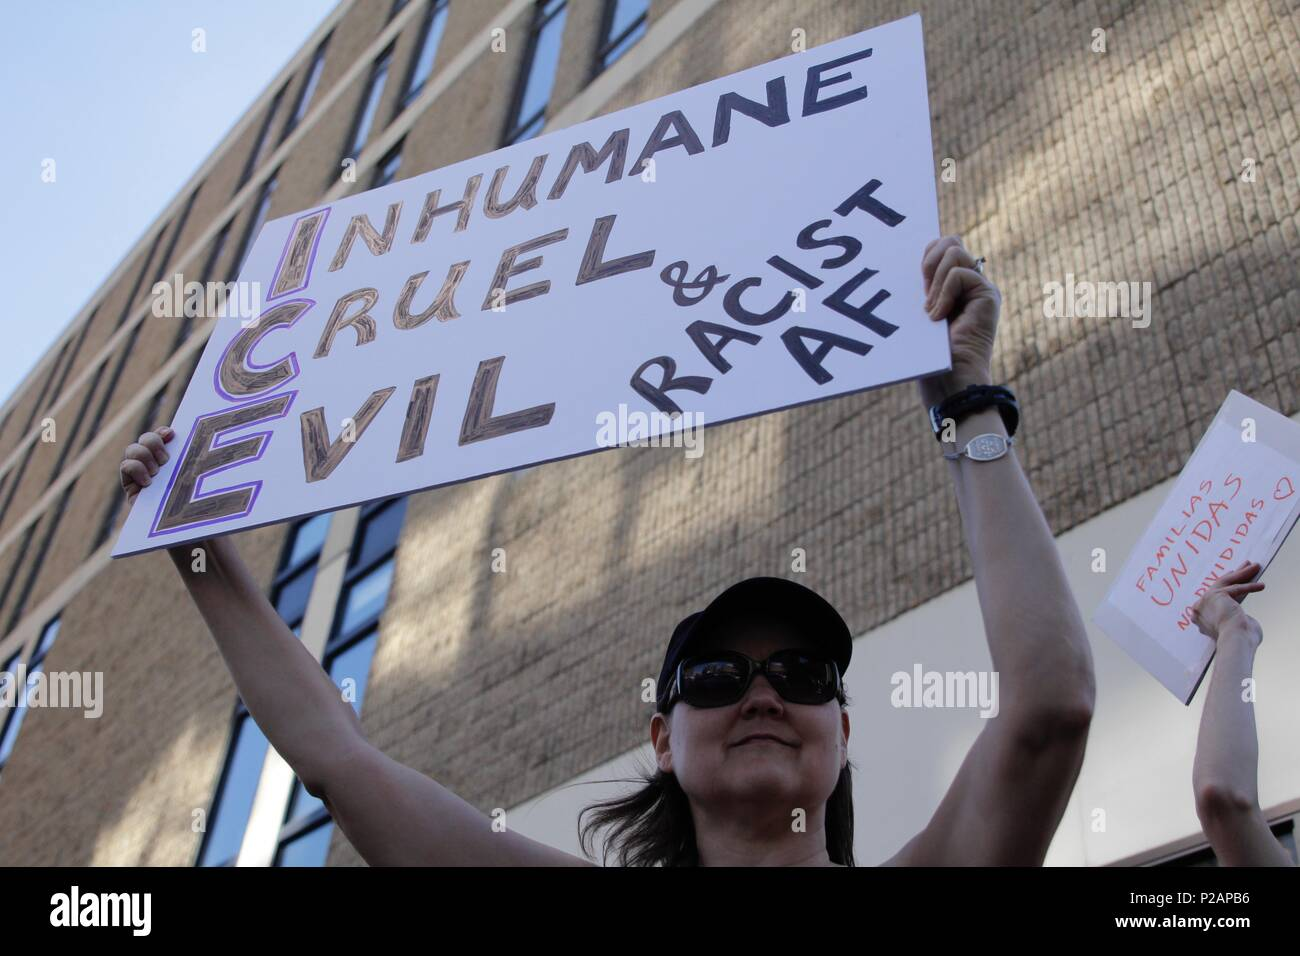 Philadelphia, PA, USA - June 14, 2018: A demonstrator protests ICE and the Trump Administration policy of separating migrant families at the U.S - Mexico border. Credit: Jana Shea/ Alamy Live News - Stock Image